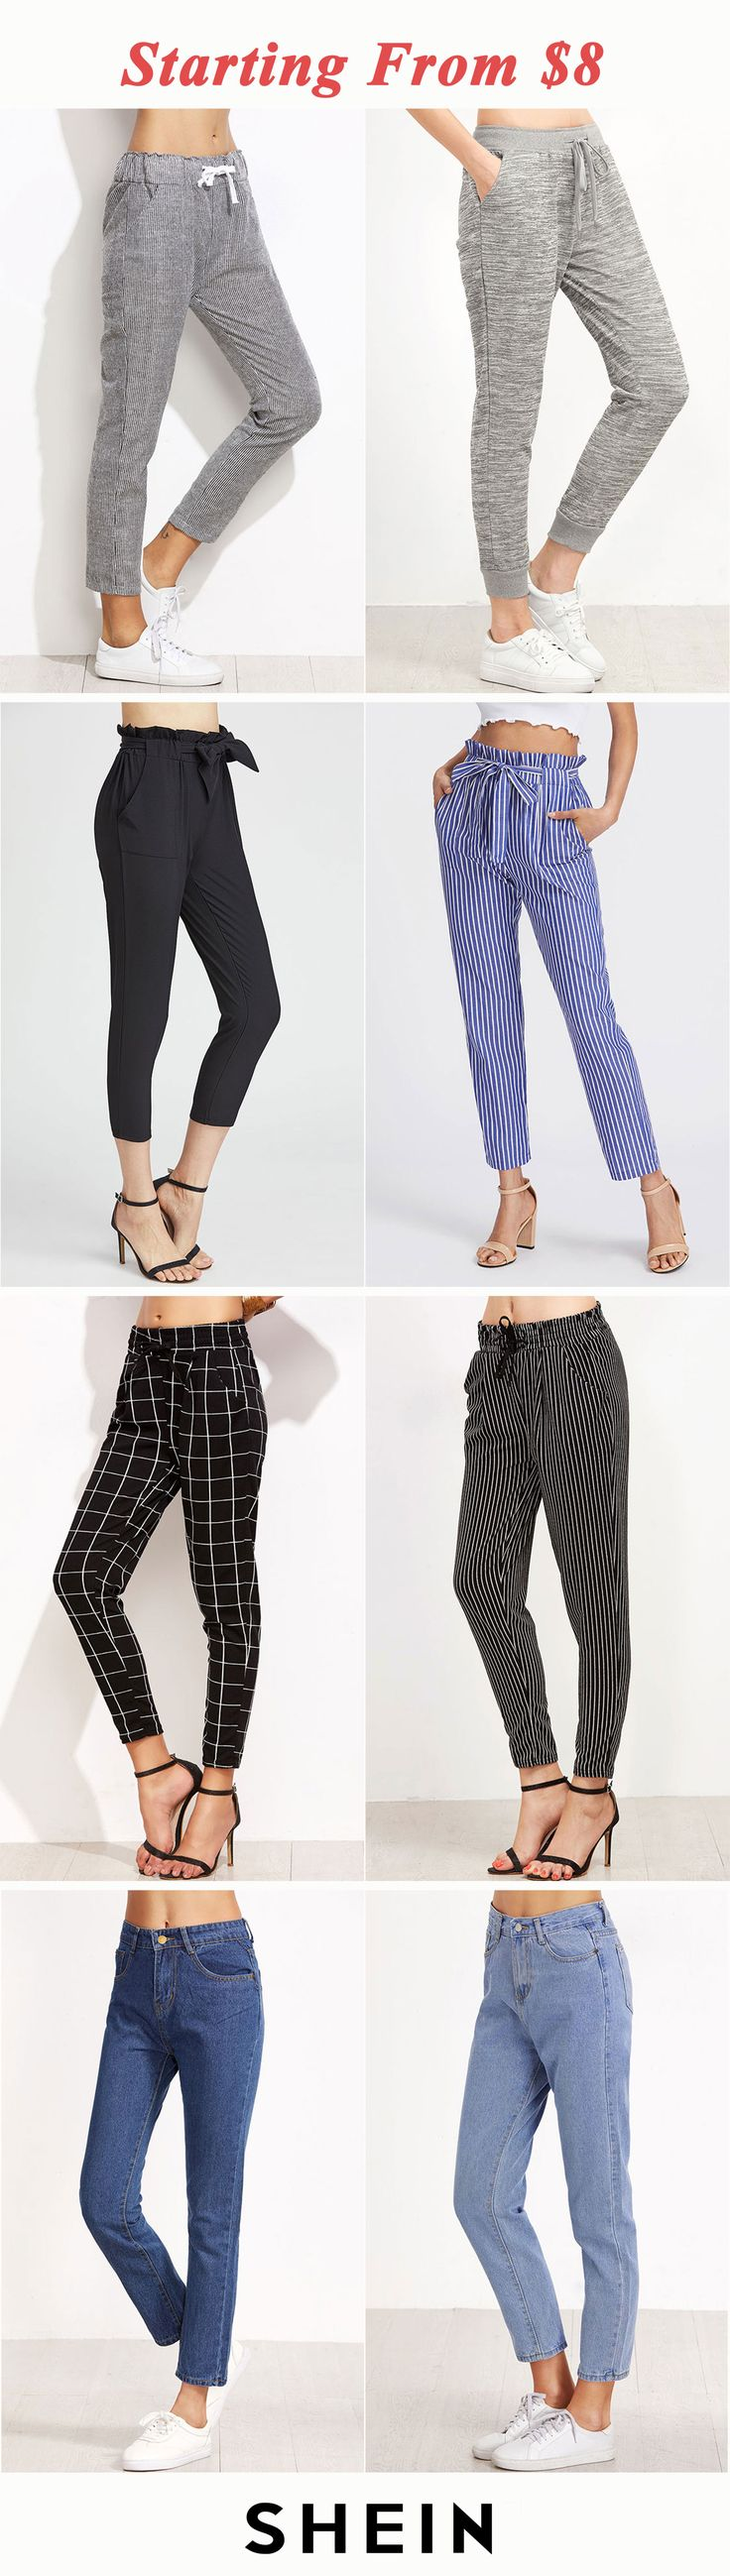 Casual pants & jeans start at $8!